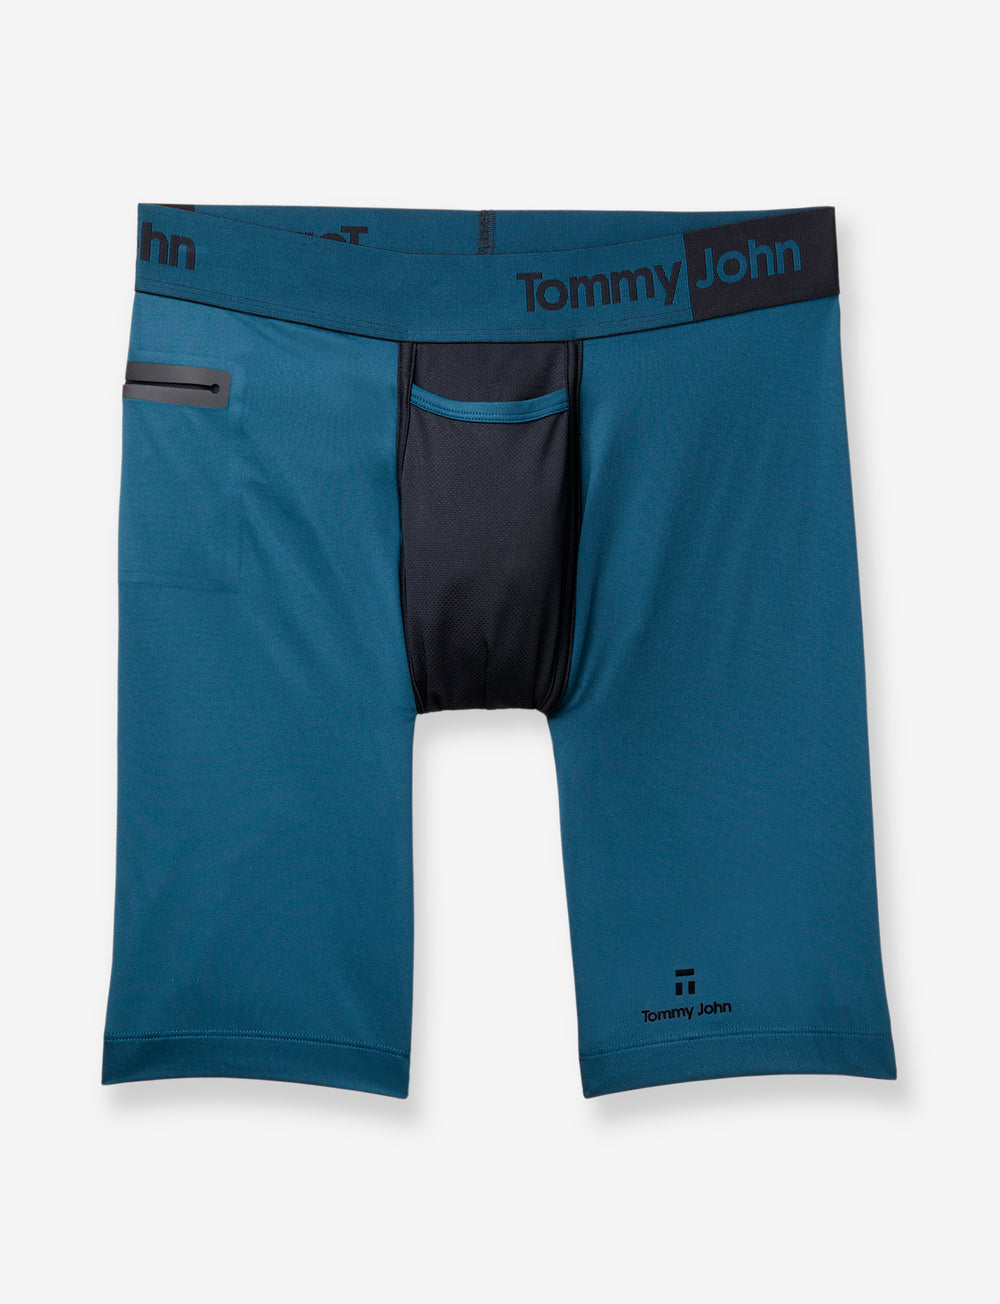 360 Sport 2.0 Colorblock Boxer Brief Details Image